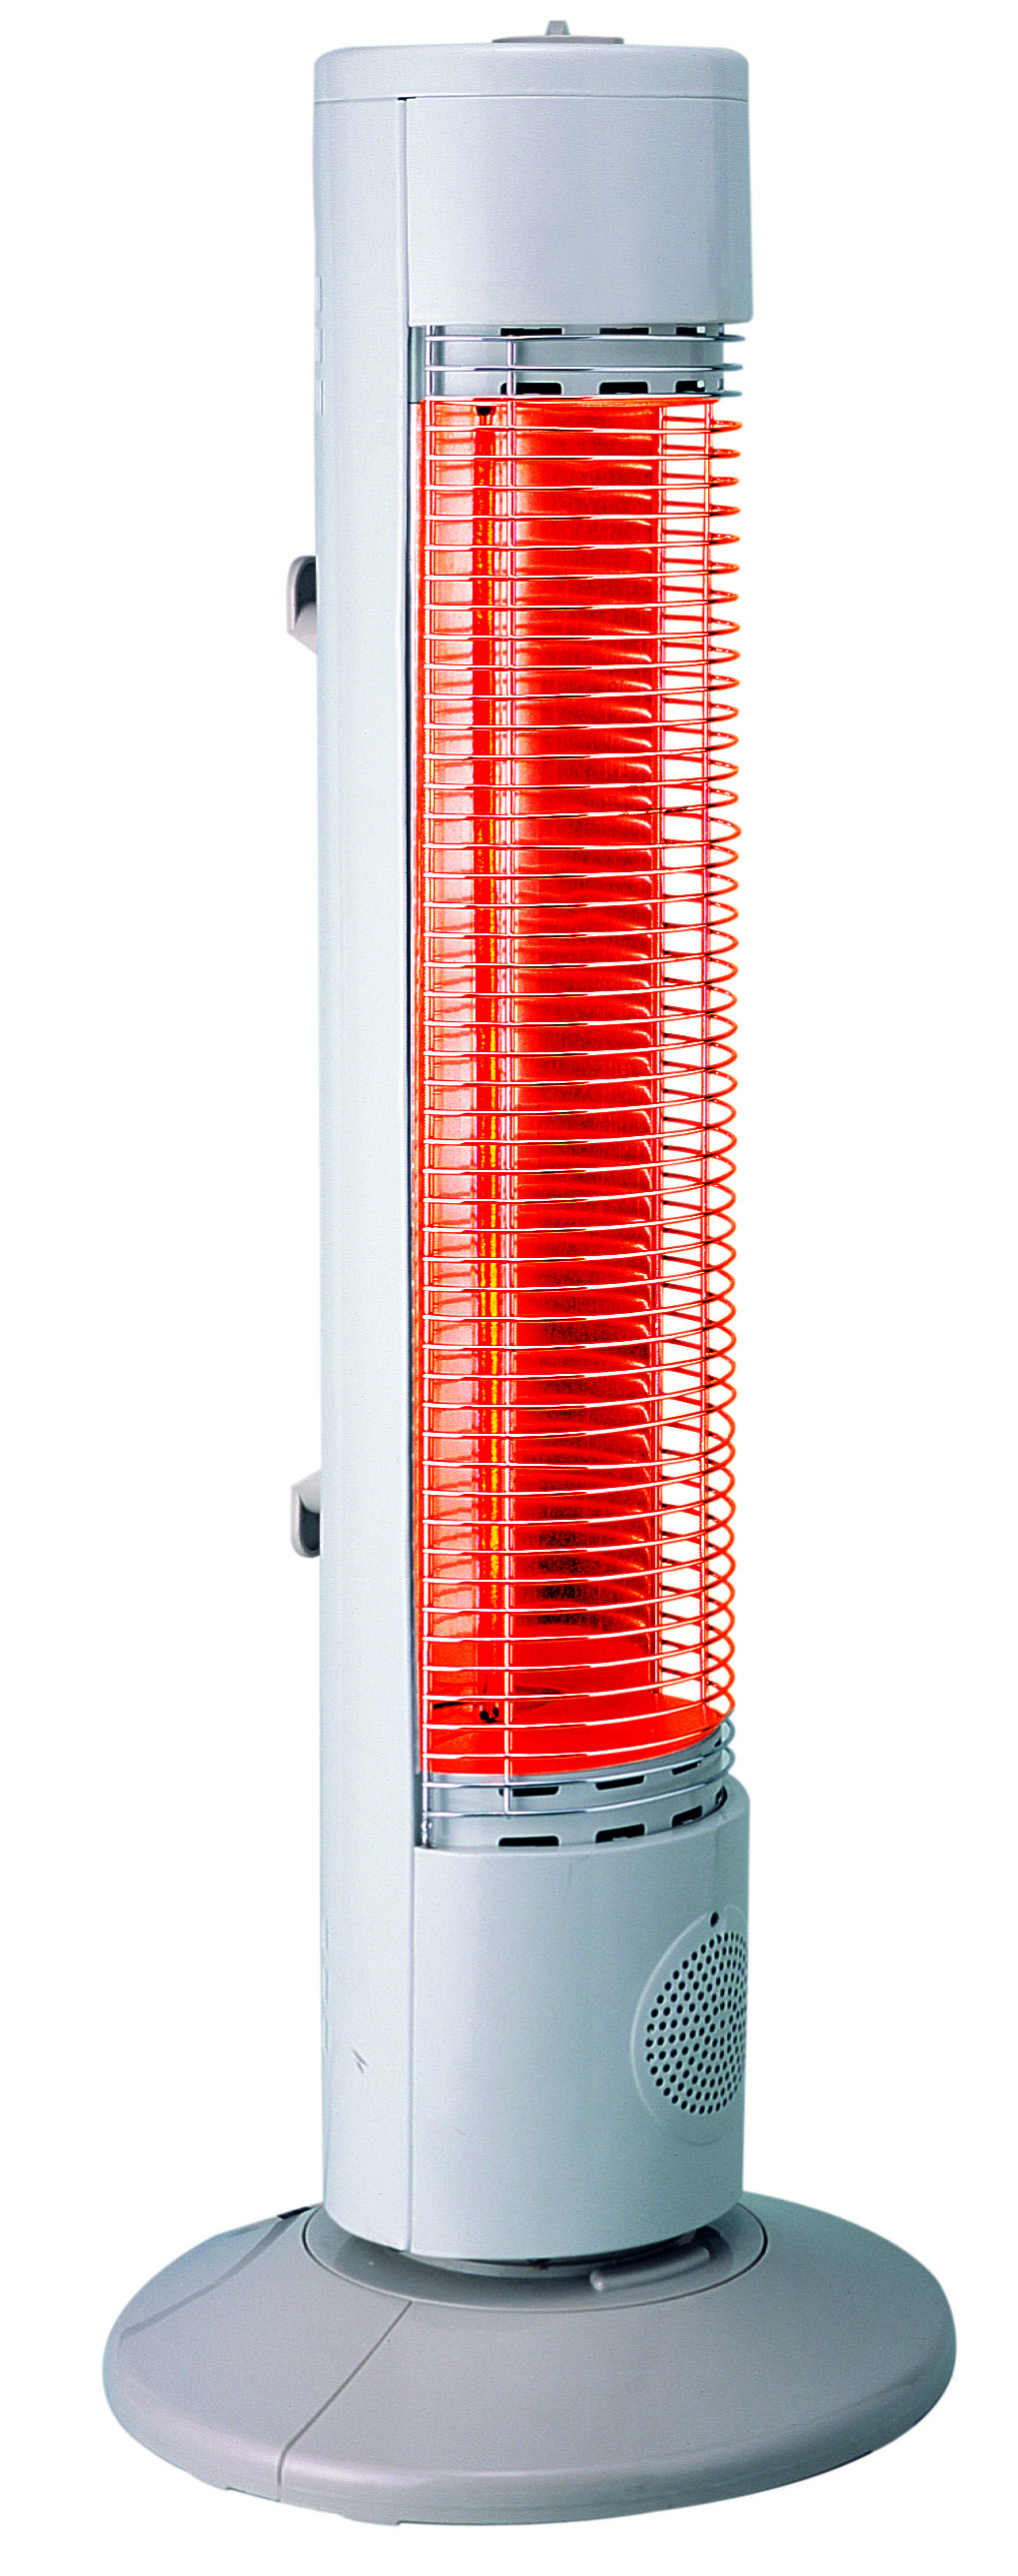 Optimus h5280s heater 31inch oscillating carbon tower